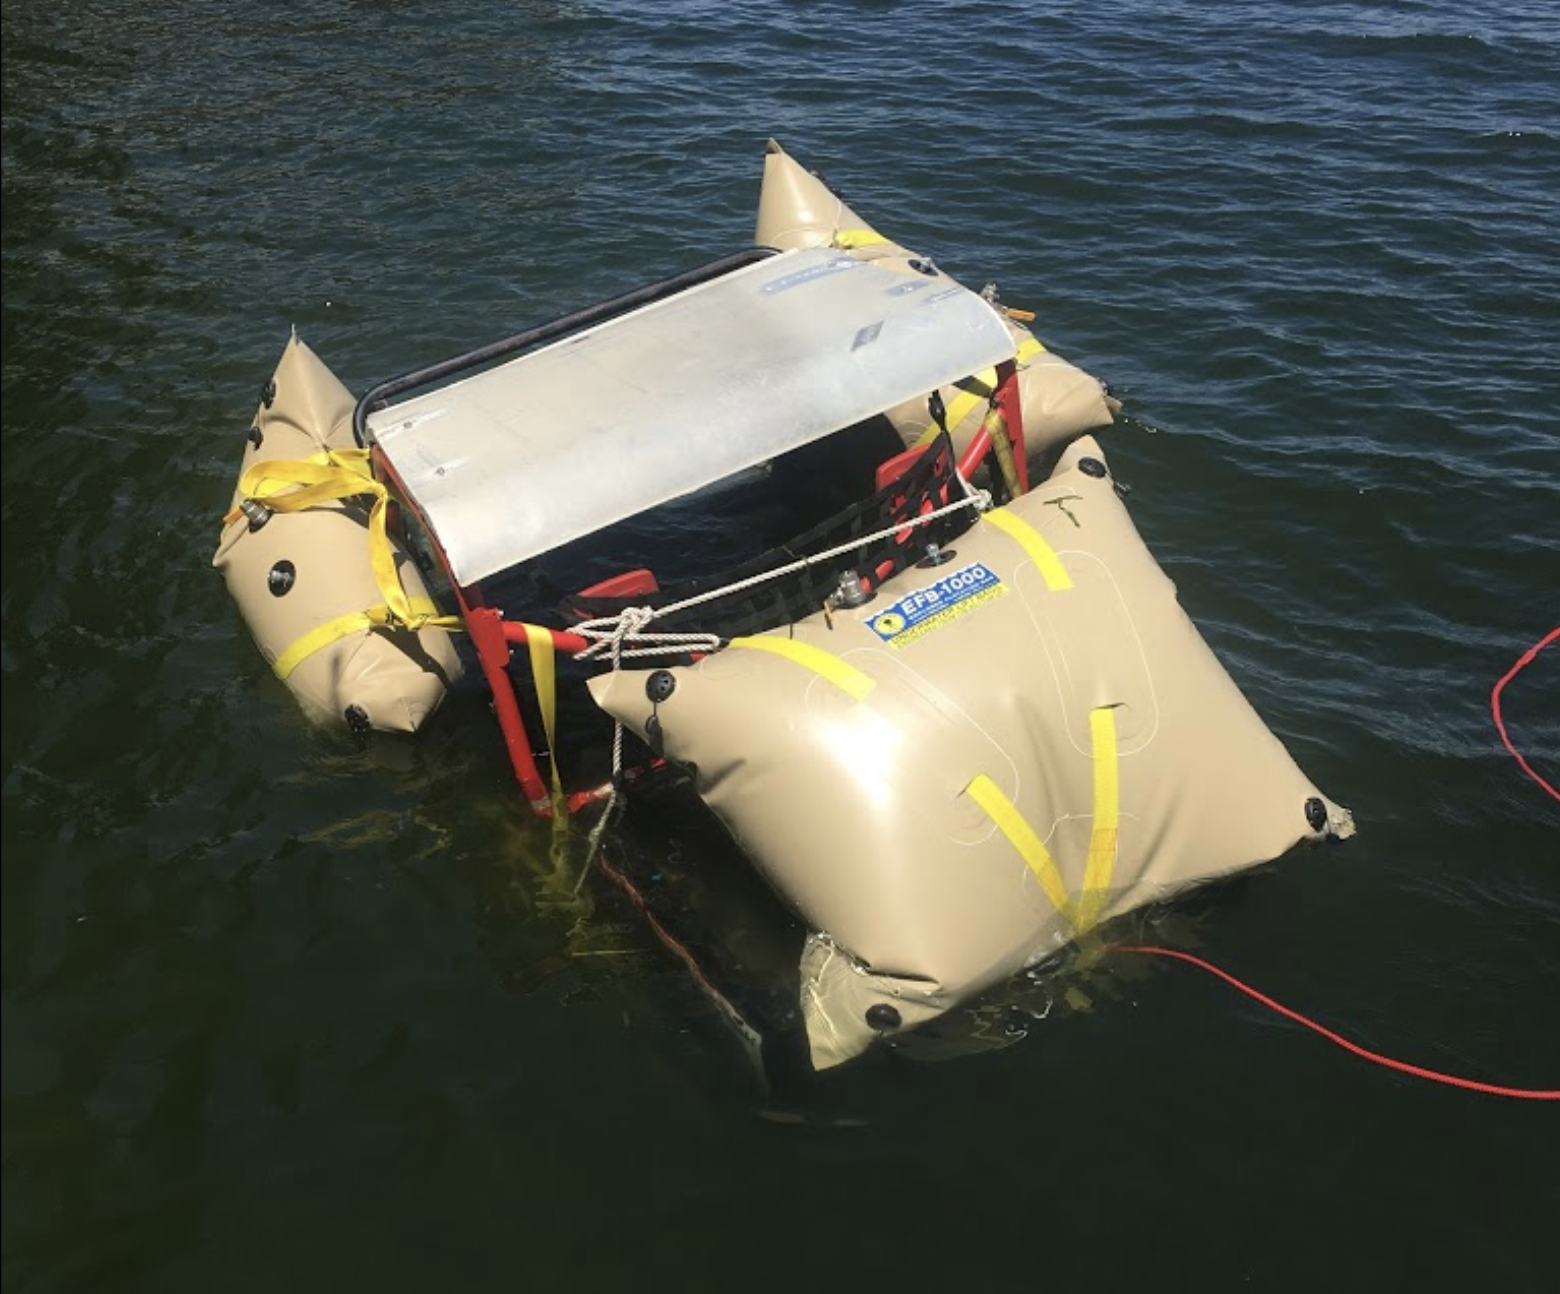 underwater recovery near me